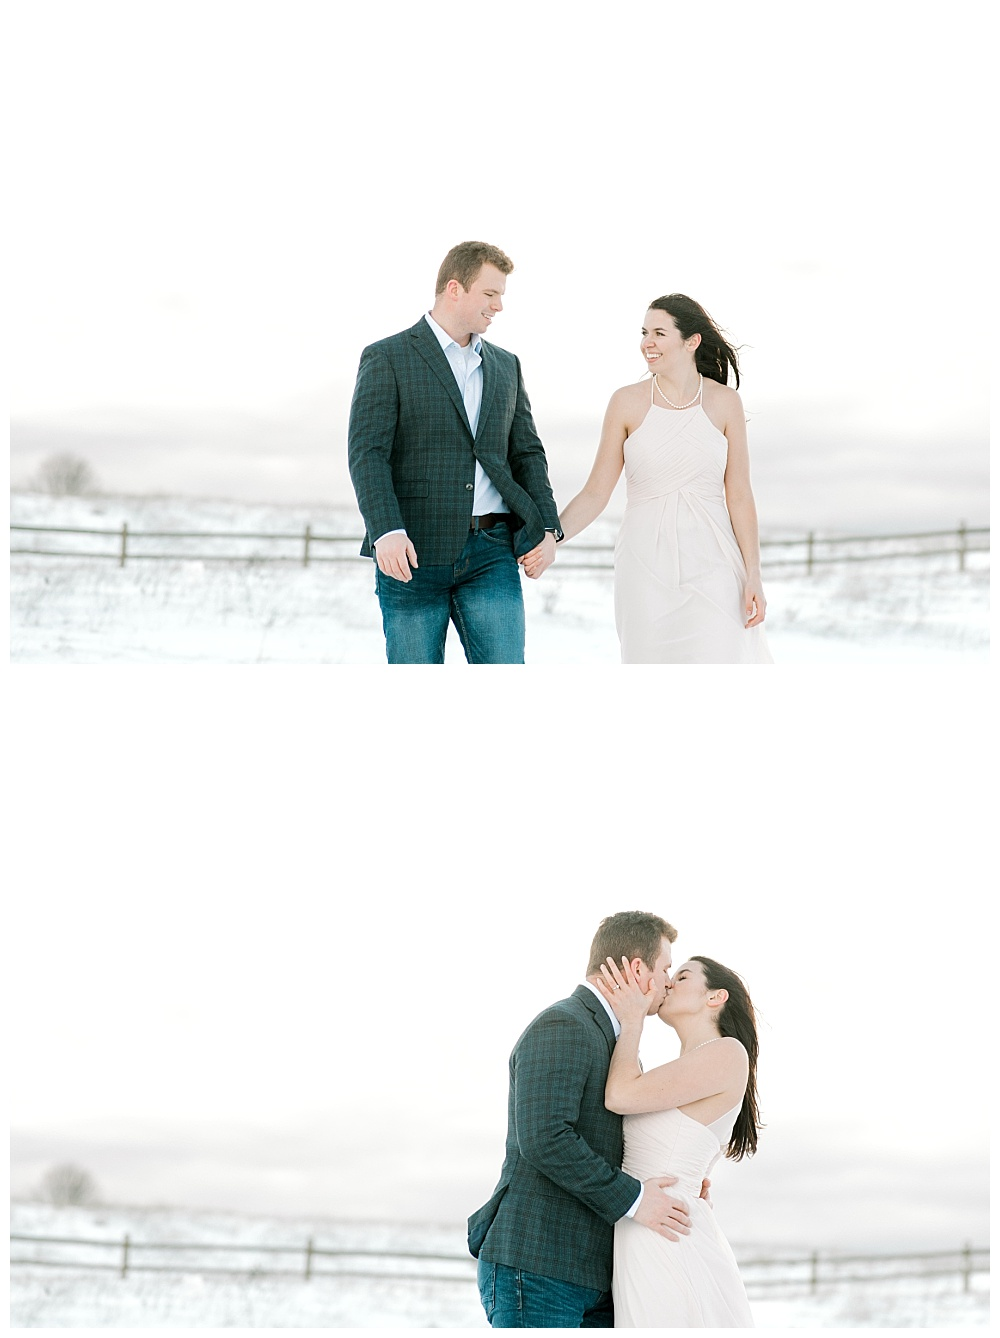 Snowy Portland Oregon engagement session in open field.